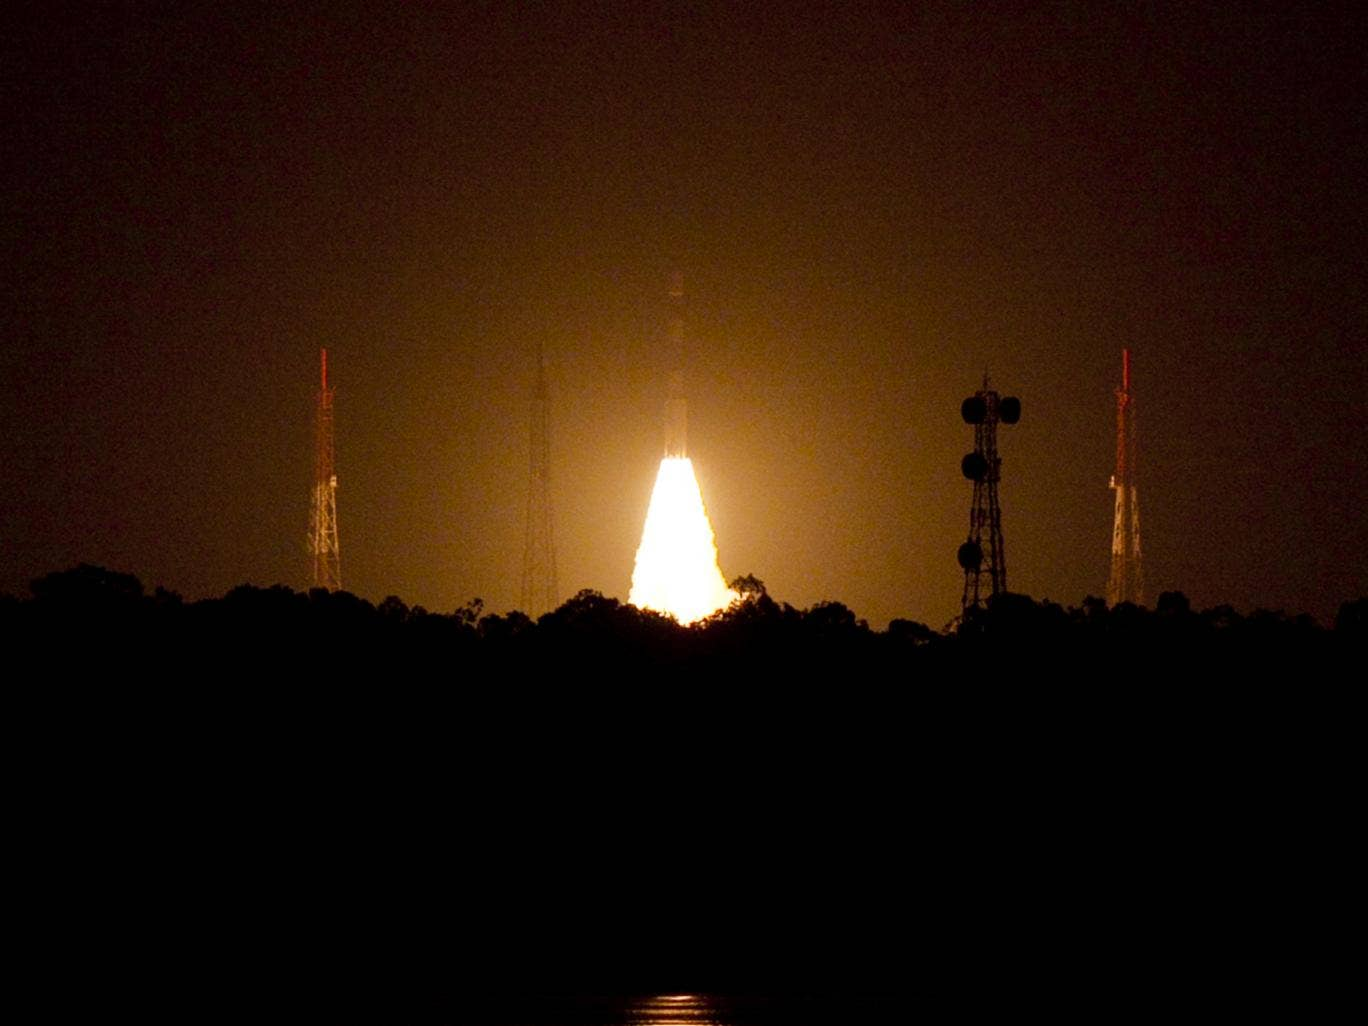 India's Polar Satellite Launch Vehicle (PSLV-C22) is launched from The Satish Dhavan Space Centre Sriharikota. India, the world's fourth largest economy and the biggest recipient of non-humanitarian aid from Britain already has 60 satellites in space